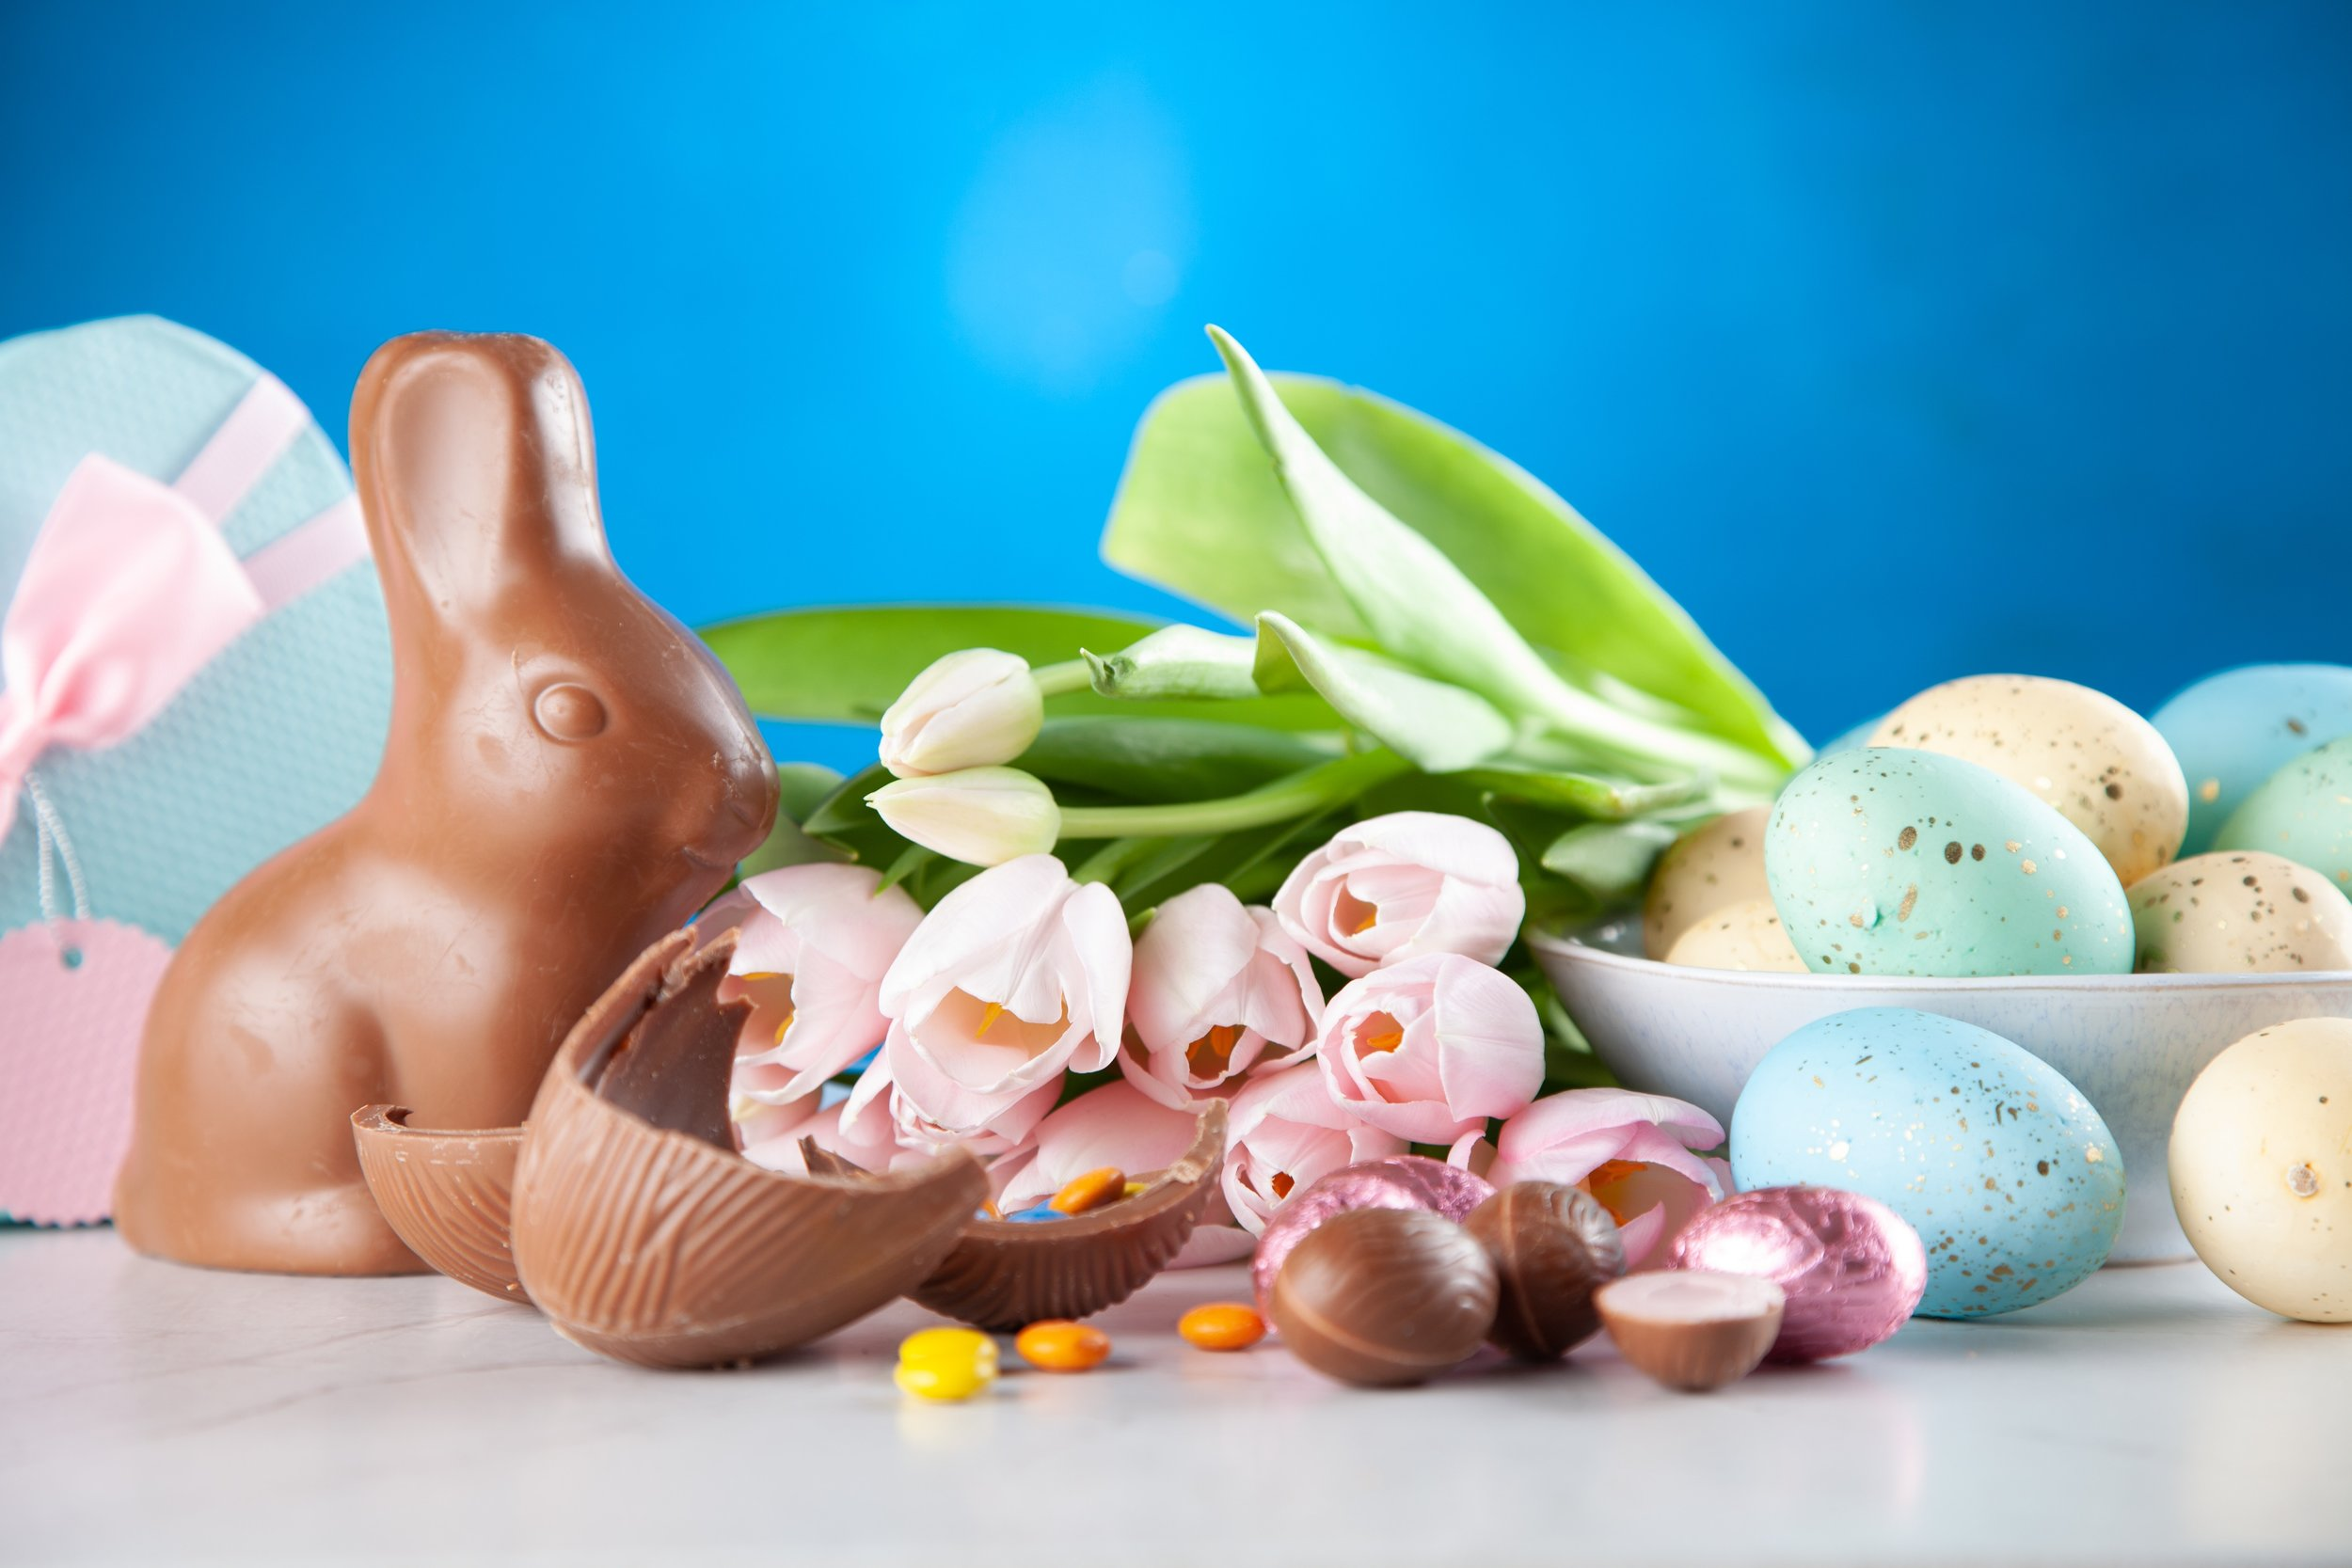 Easter eggs chocolate bunny and flowers.jpg